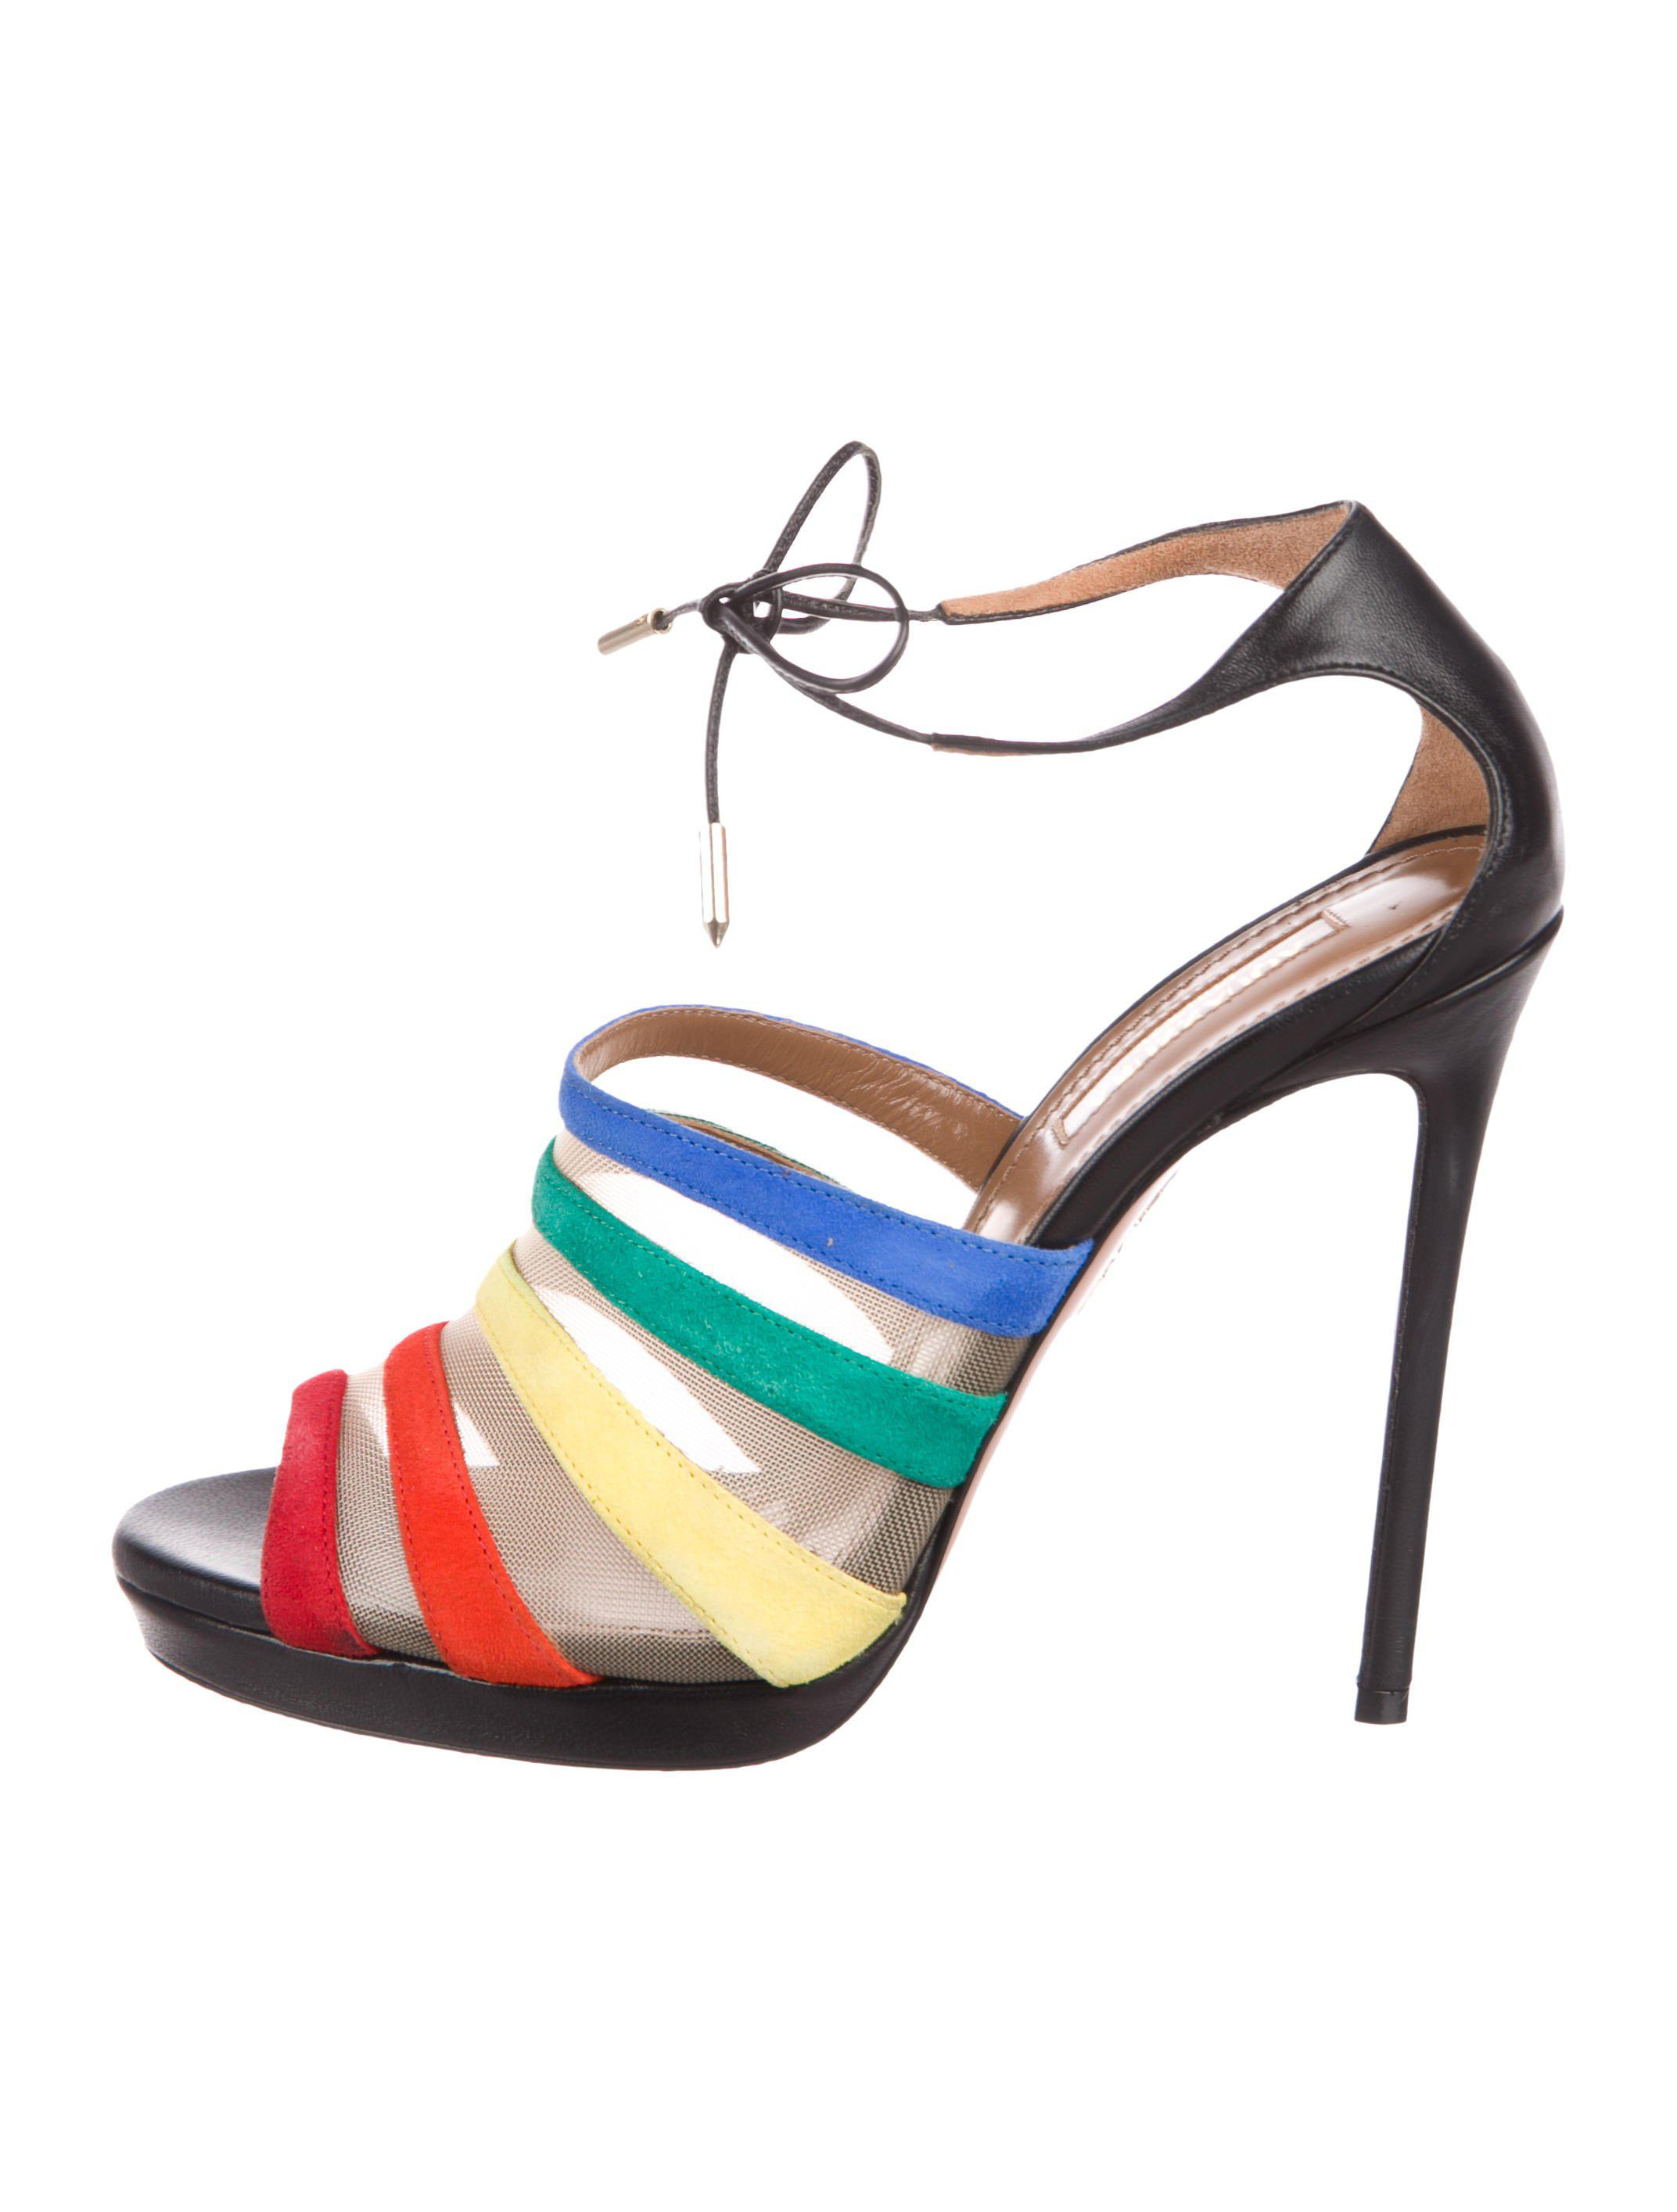 Aquazzura Graphic Suede Sandals clearance looking for 100% original cheap online the cheapest cheap online clearance high quality 29j2Zuh